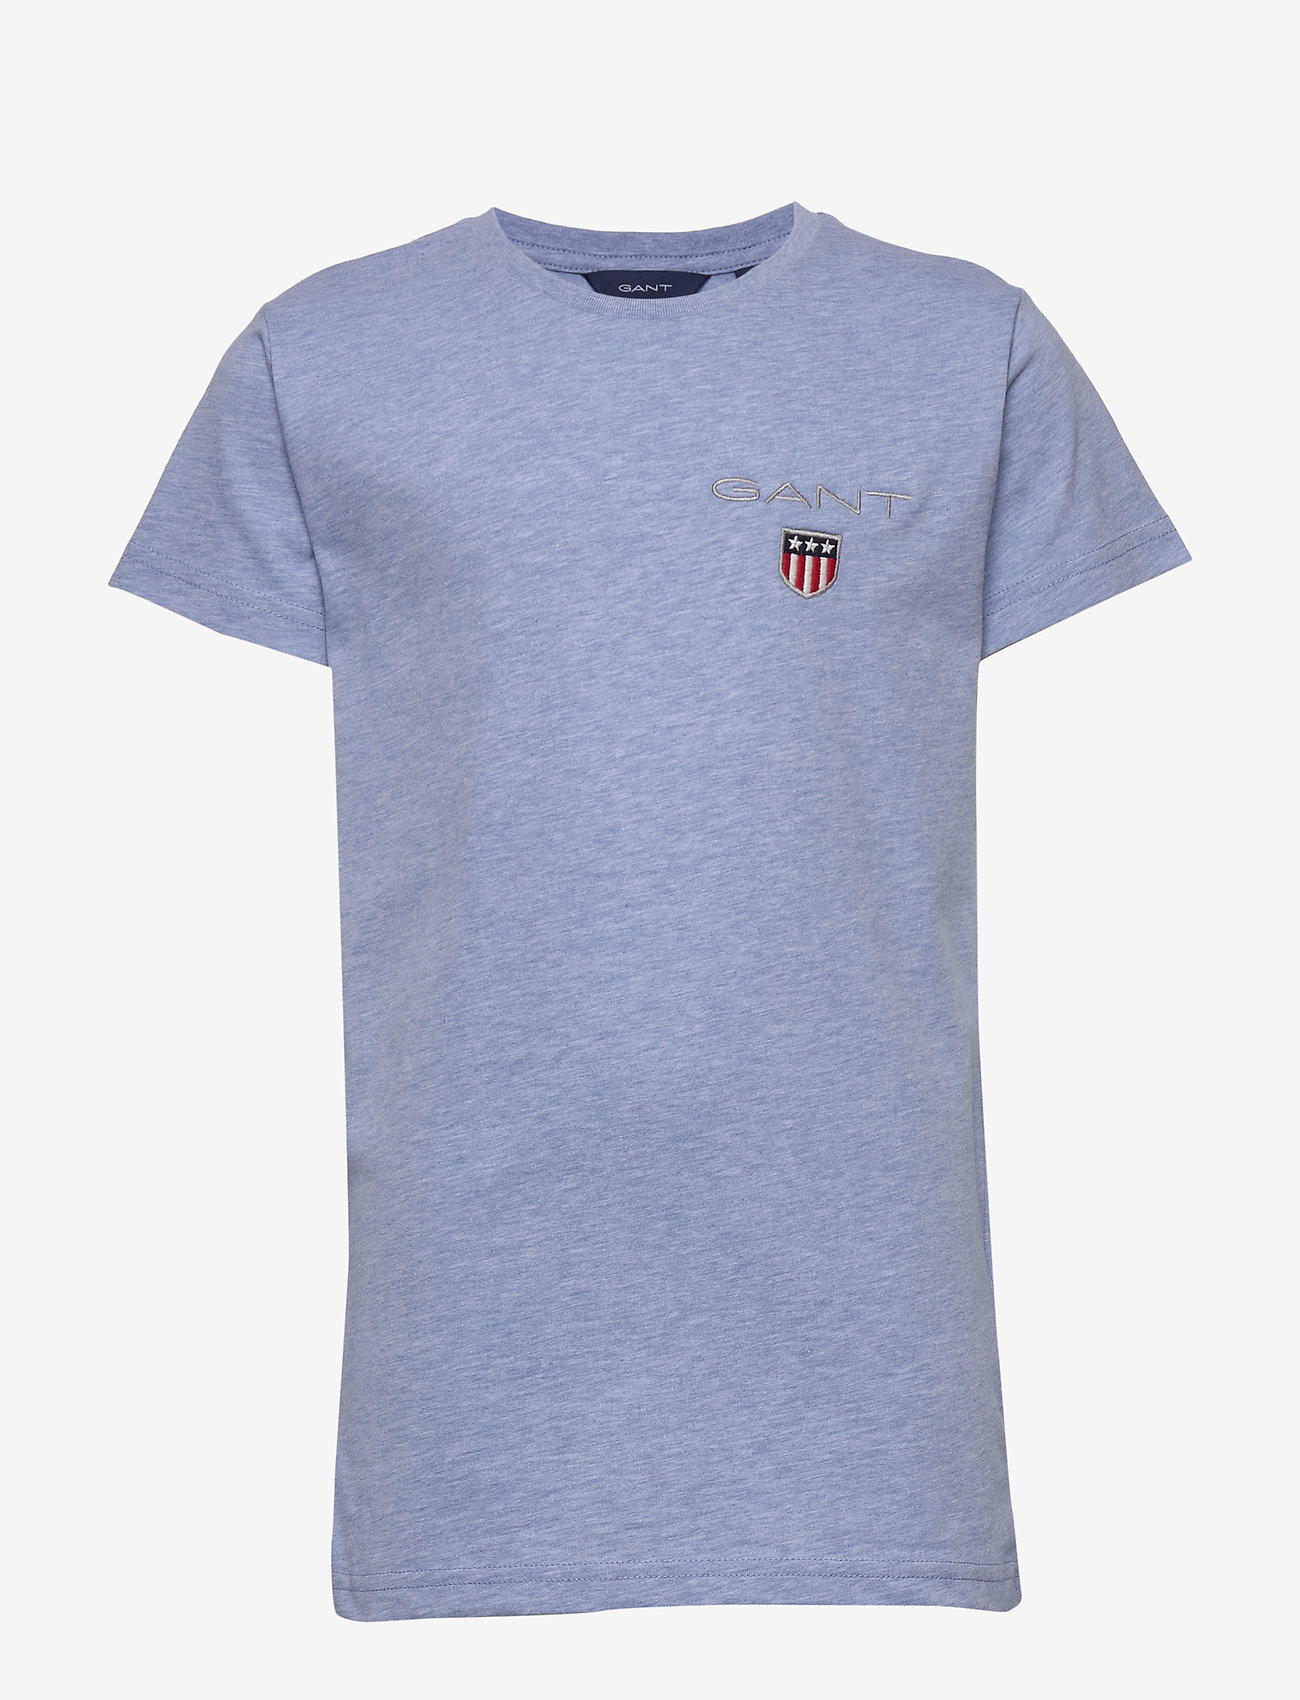 GANT - D1. MEDIUM SHIELD SS T-SHIRT - kurzärmelige - frost blue mel - 0